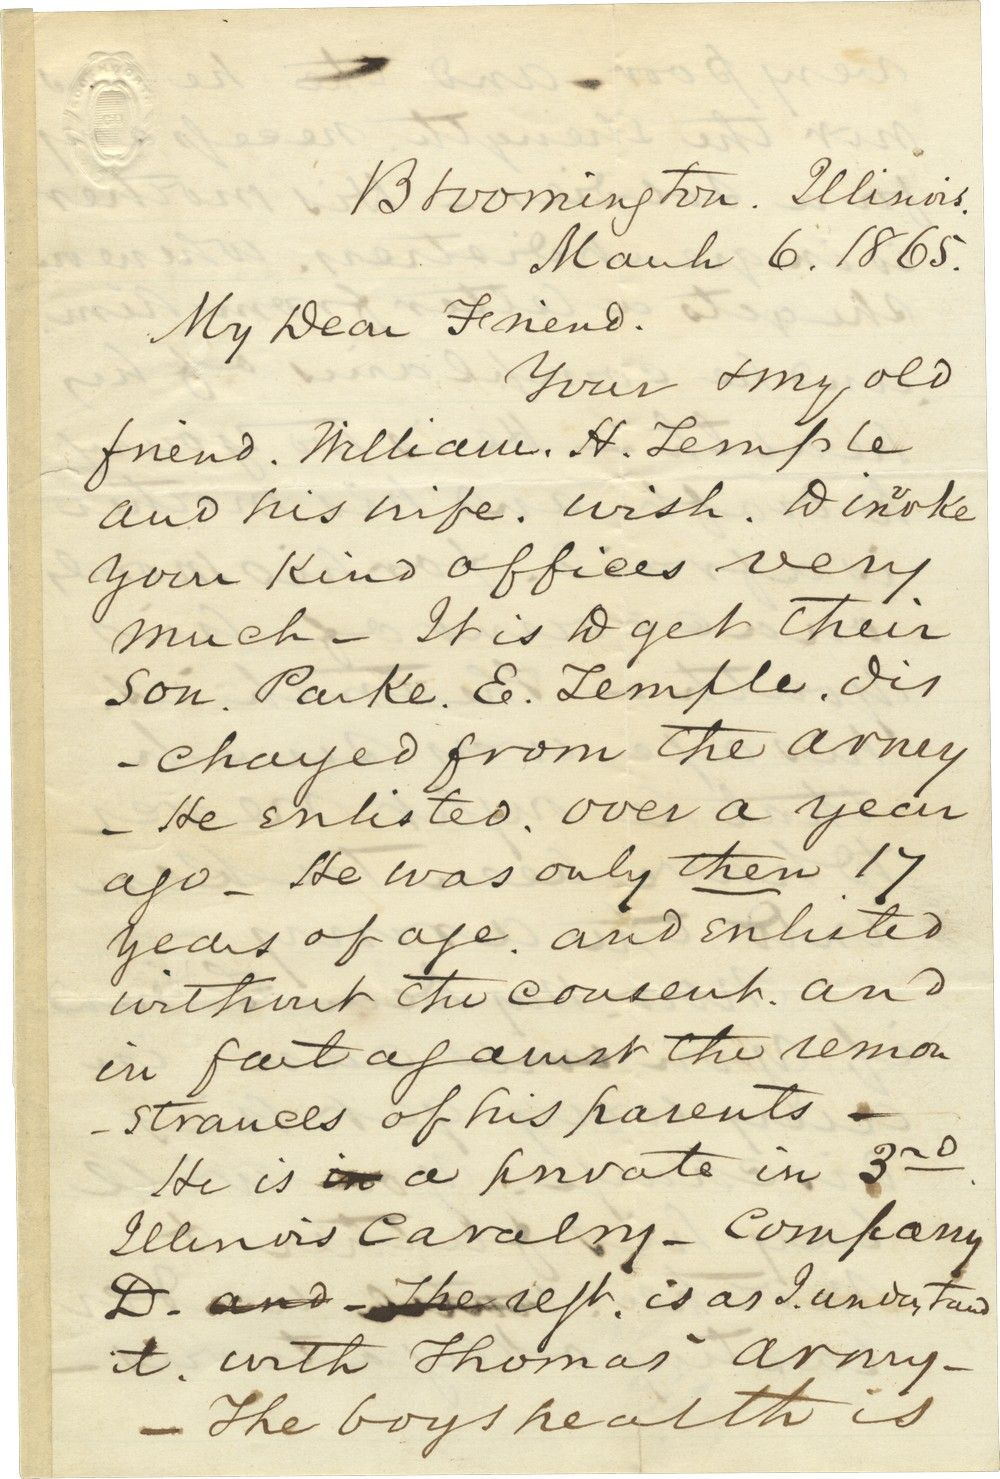 Three Days Before He is Assassinated, Abraham Lincoln Orders the Discharge of a Sickly Boy from the Army